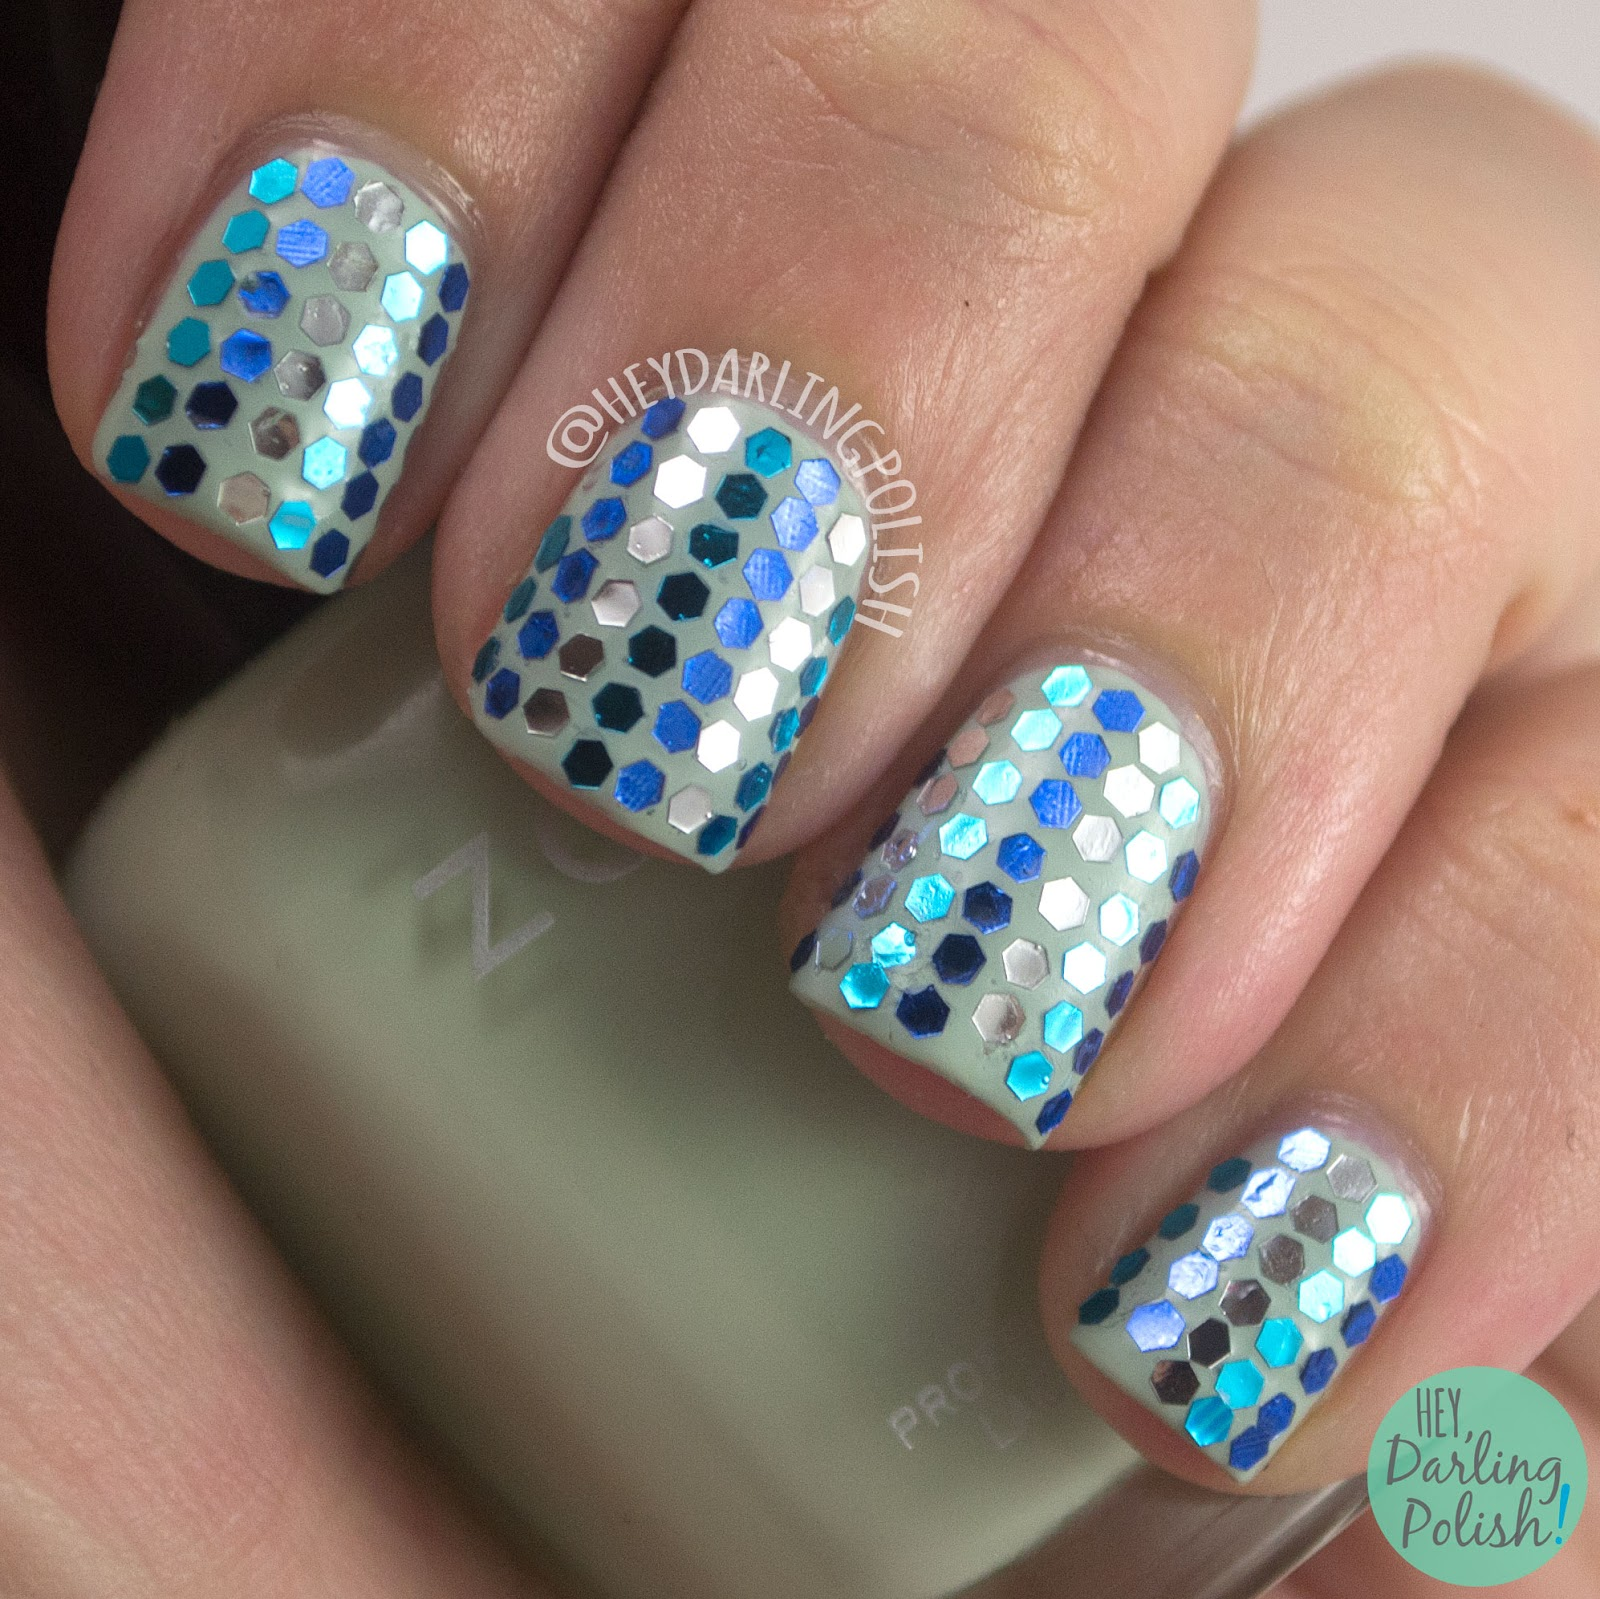 nails, nail art, nail polish, glitter, glitter placement, glitter, glitter nails, hey darling polish, green, blue, 31 day challenge, 31dc2014